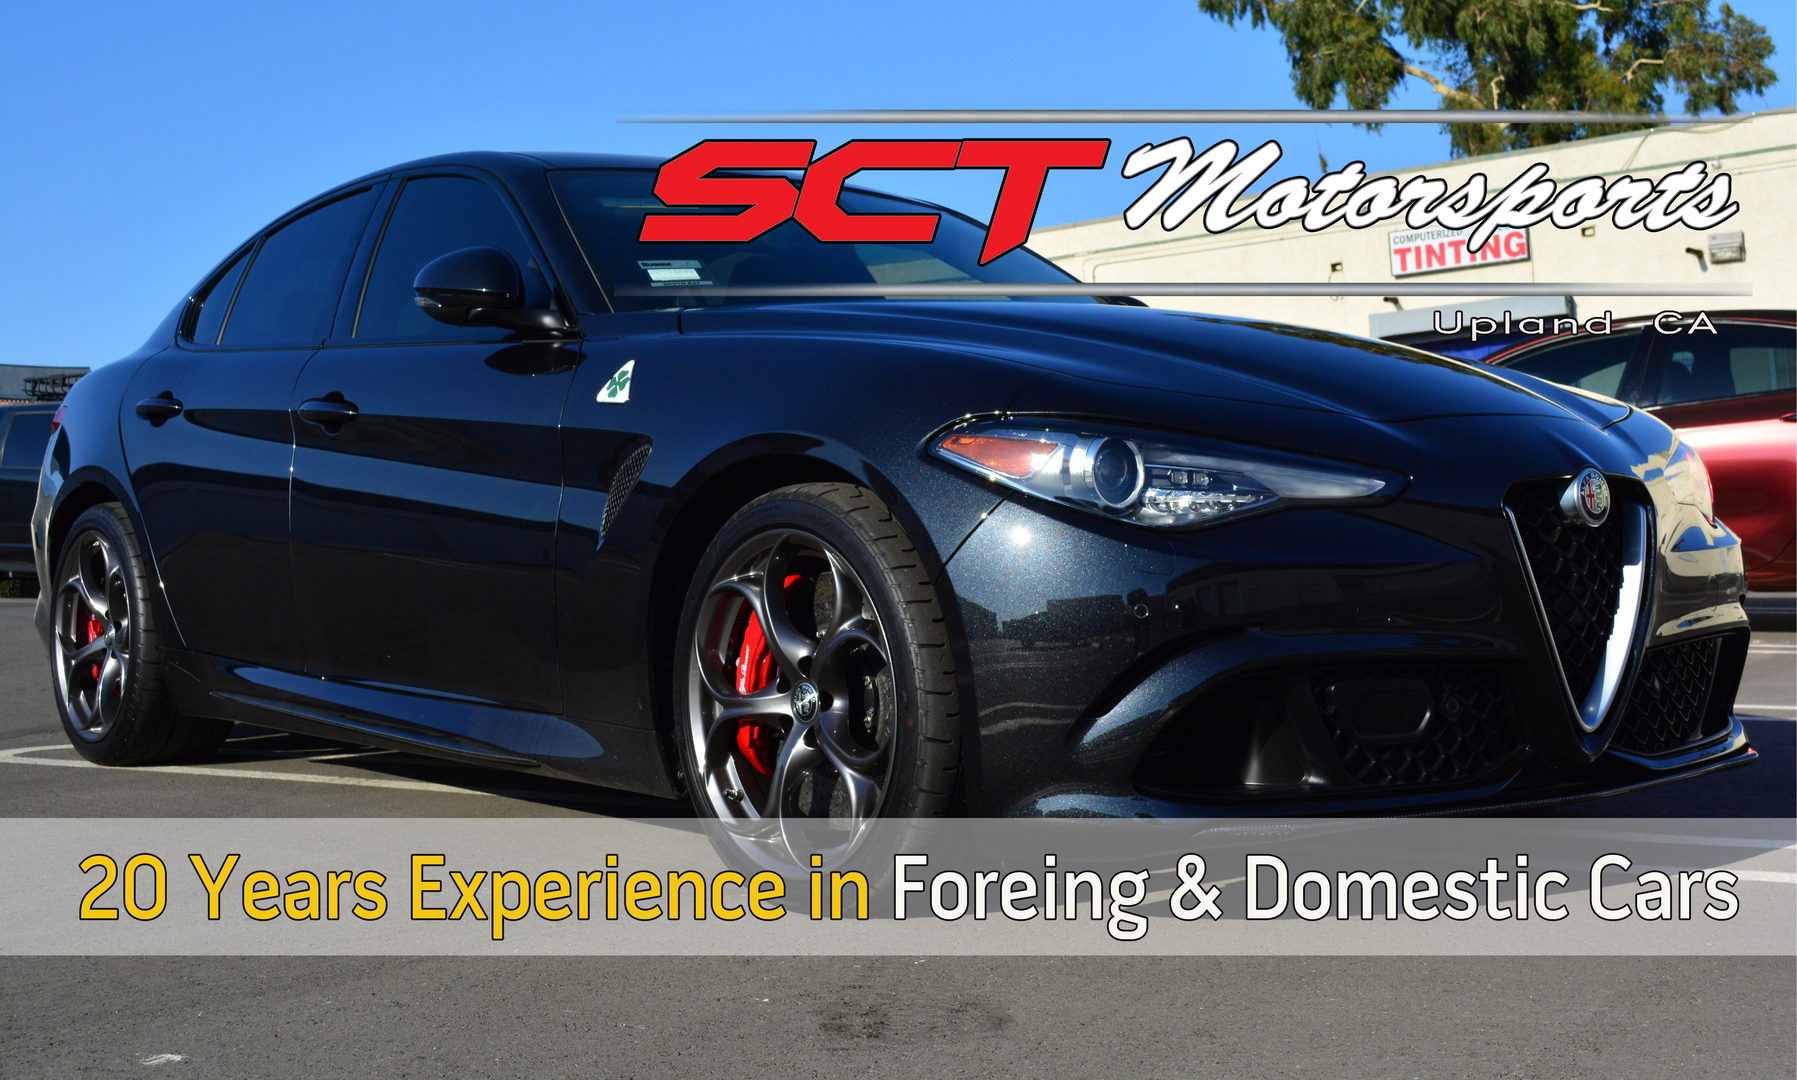 So Cal Tint Upland CA Auto Window Tint Paint Protection clear bra